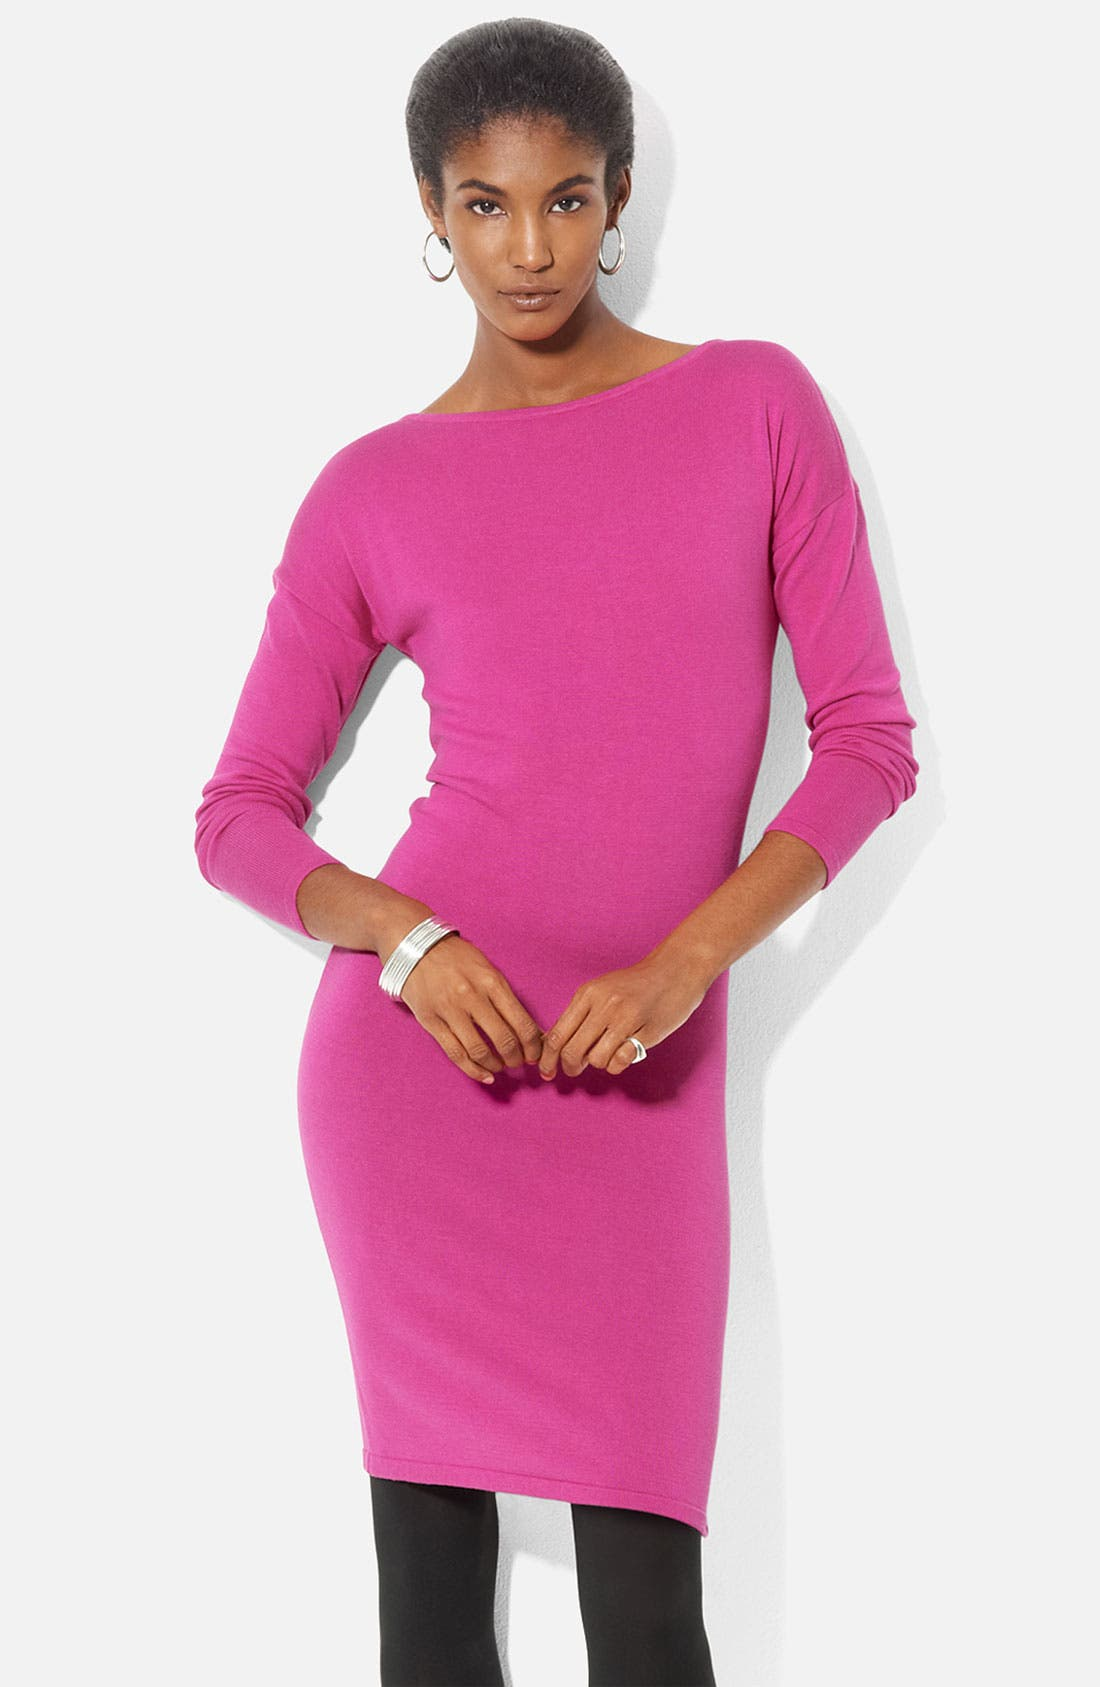 Main Image - Lauren Ralph Lauren Bateau Neck Merino Knit Dress (Petite)